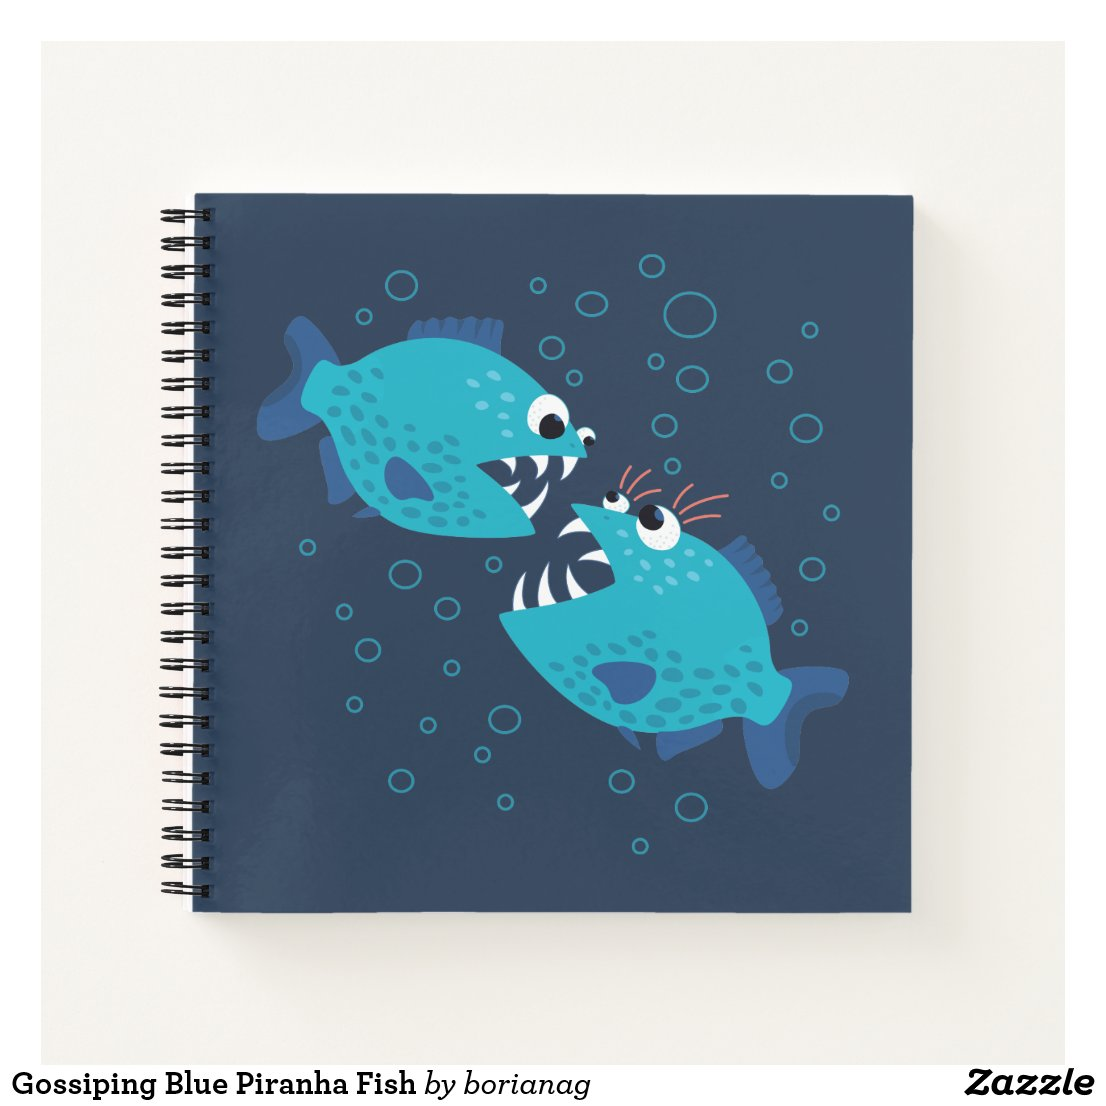 Gossiping Blue Piranha Fish